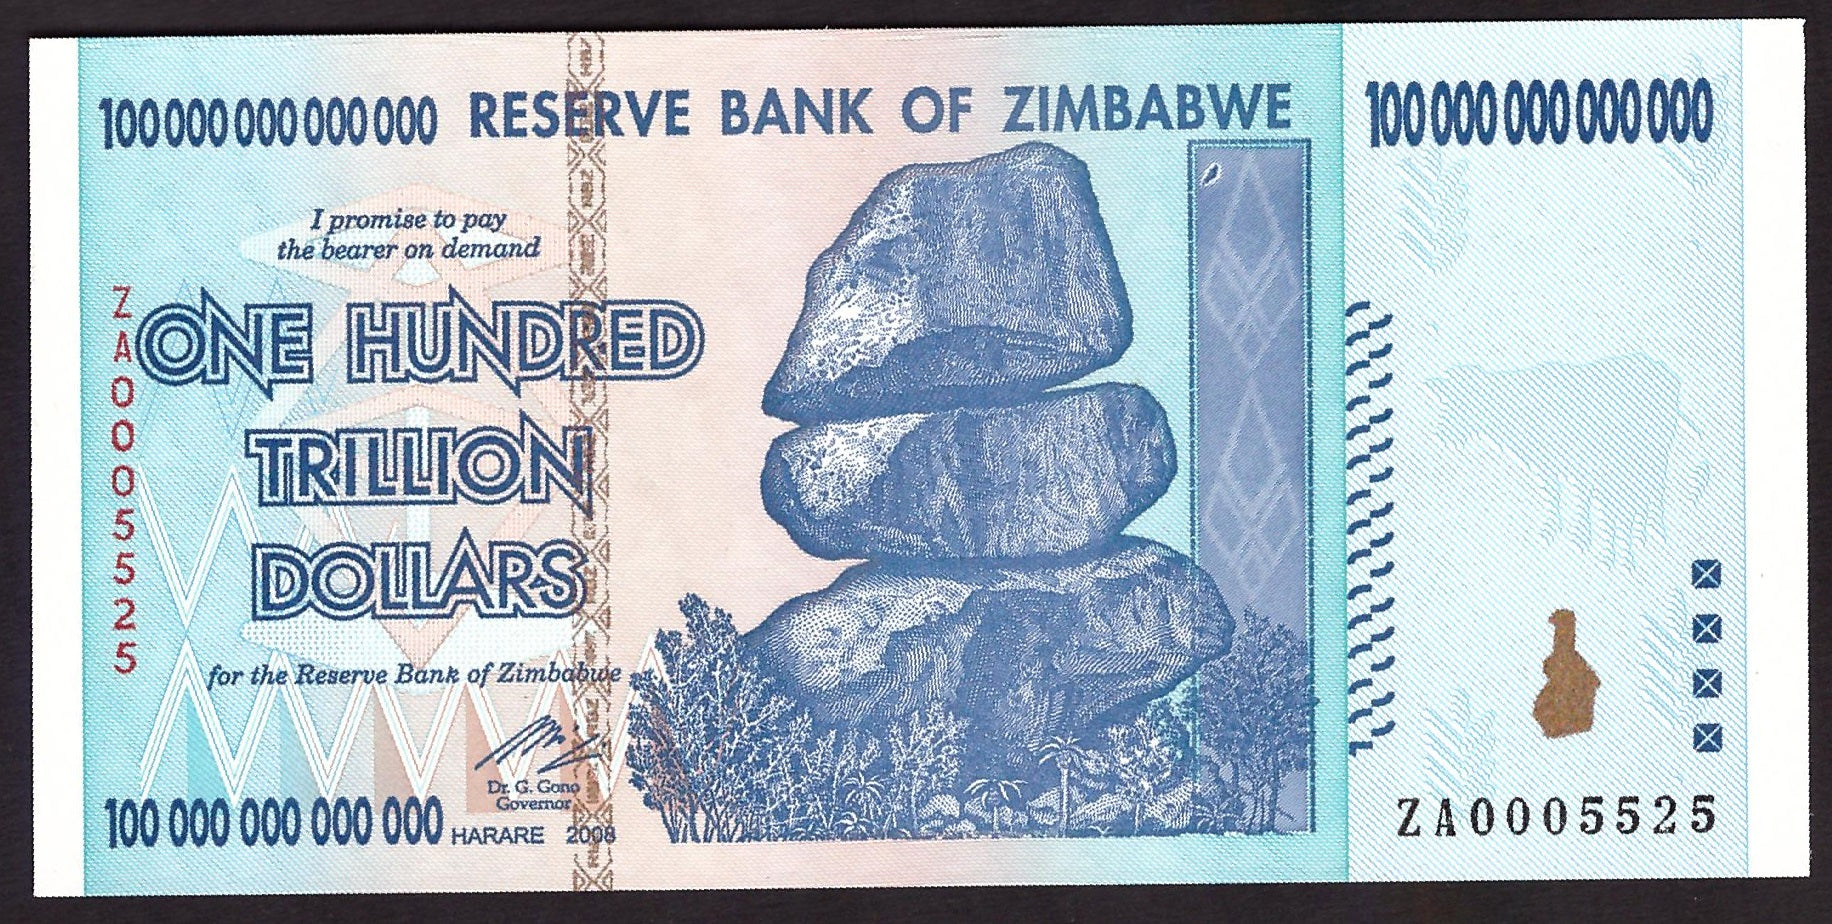 One hundred trillion worthless dollars